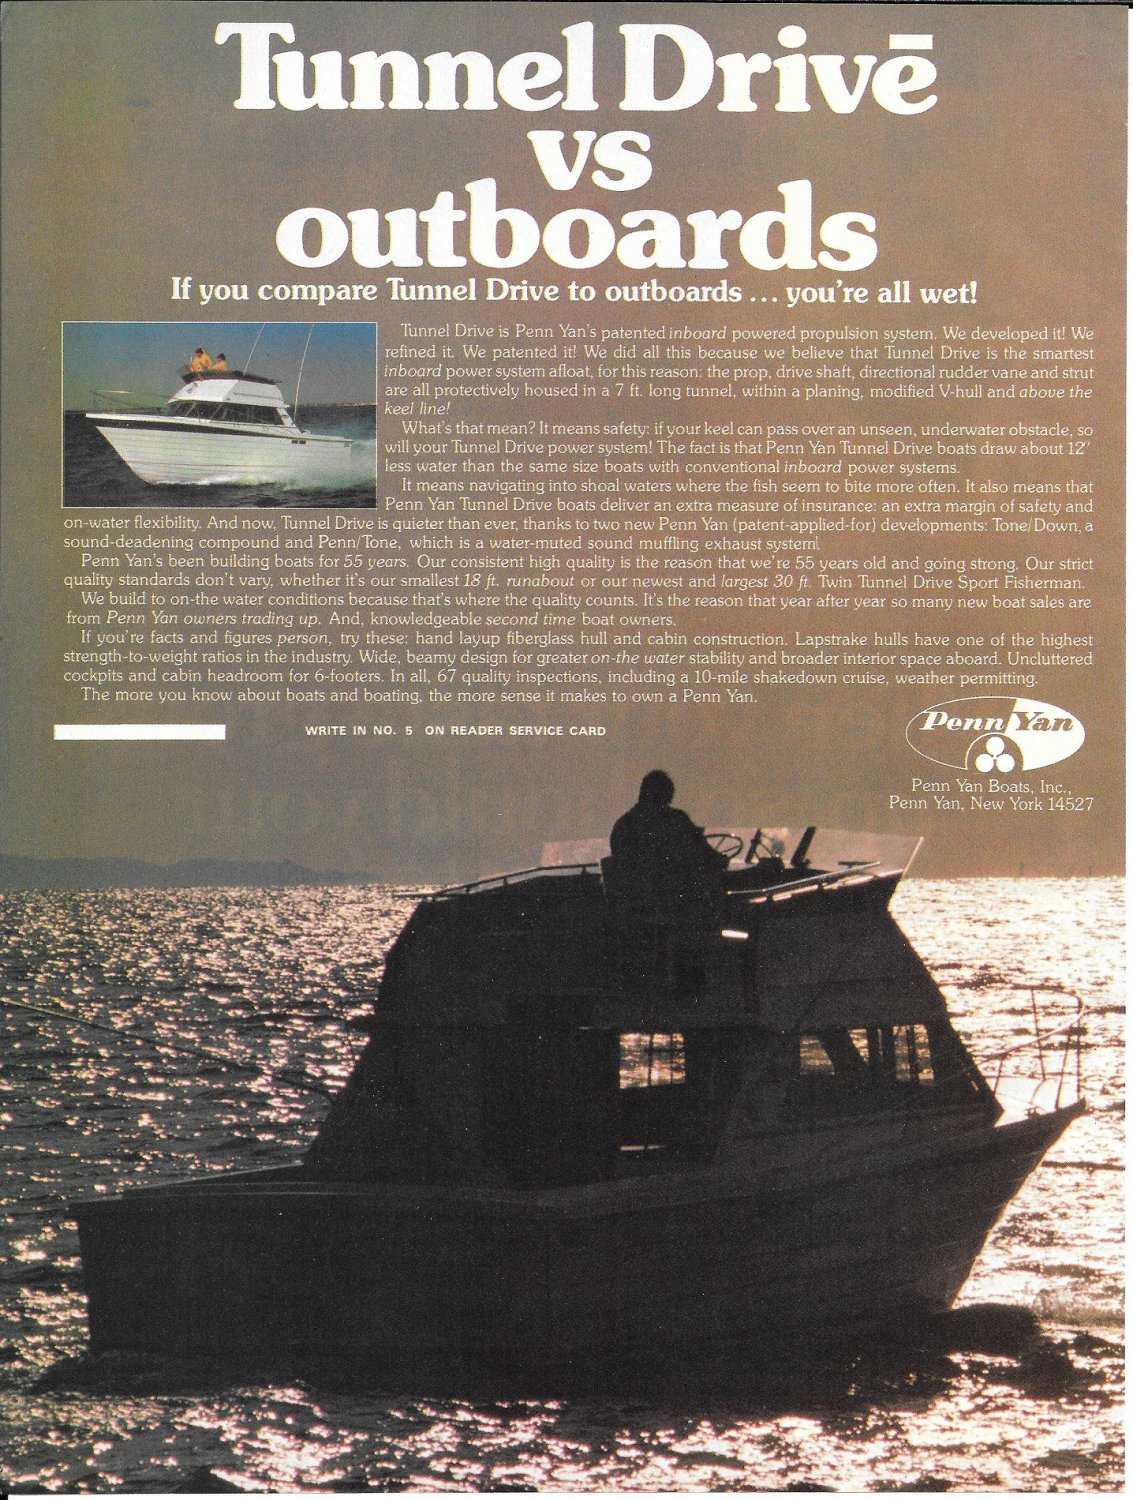 1977 Penn Yan 30' Sport Fisherman Yacht Color Ad- Nice Photo